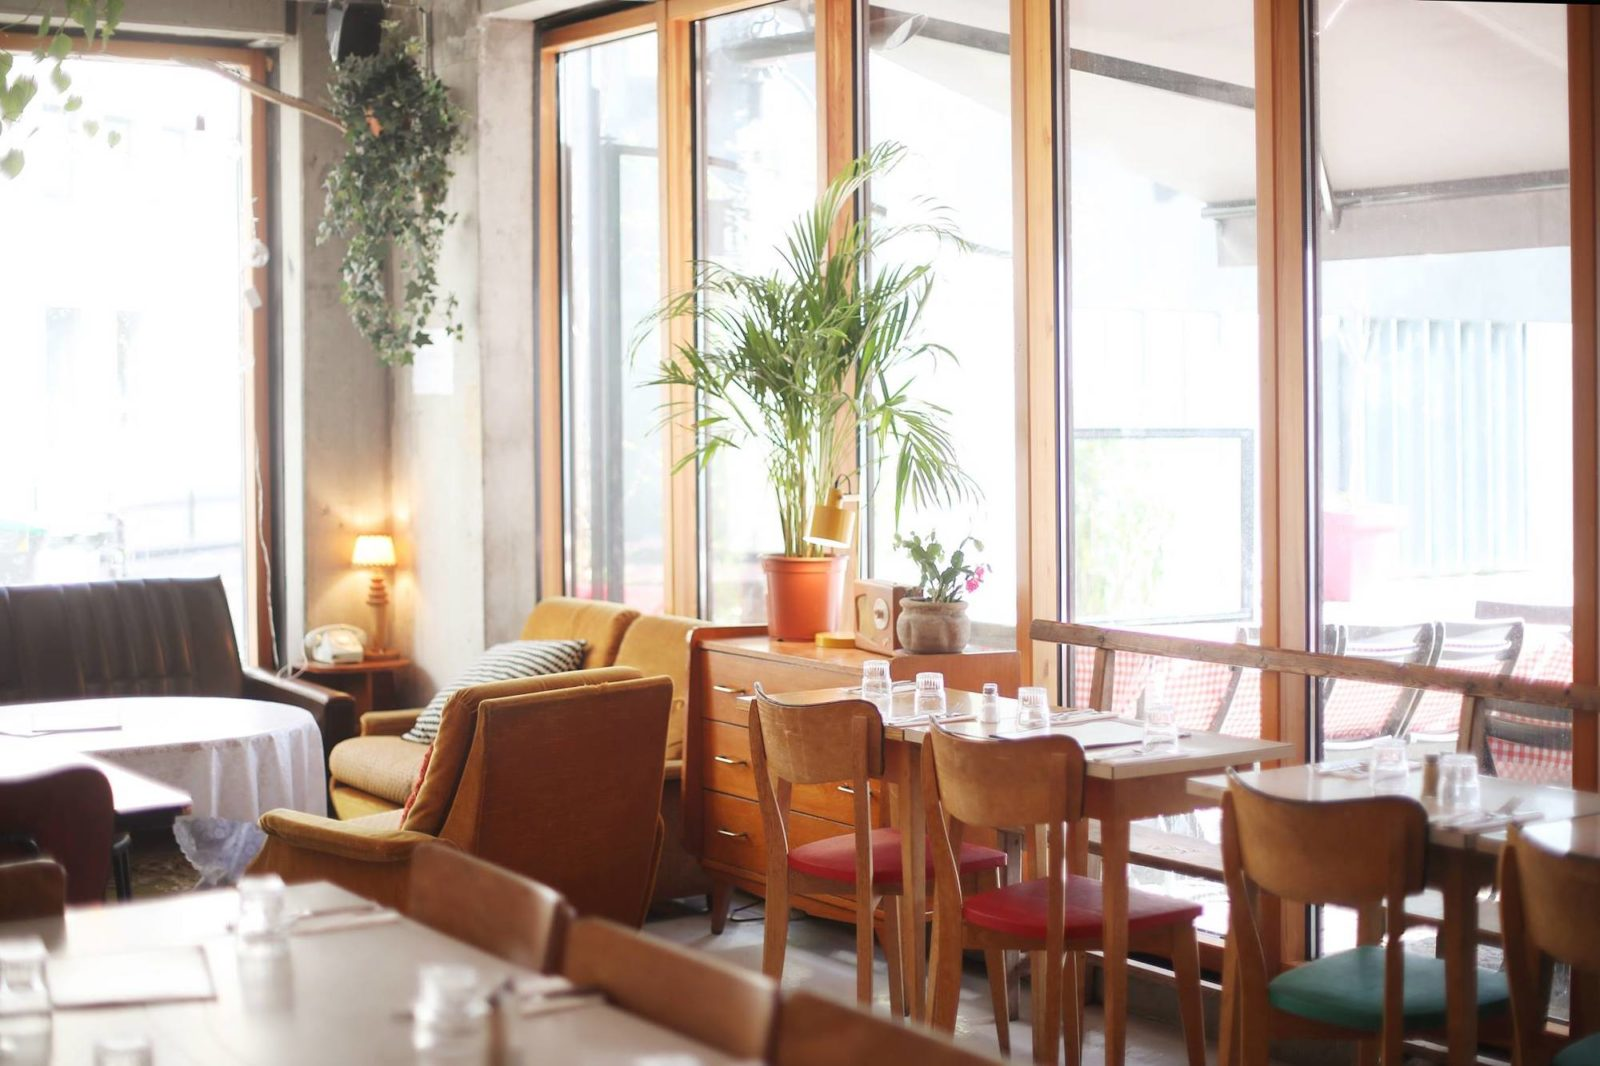 Super Café is one of the best kid-friendly restaurants in Paris and we love its light, airy interiors and the French food.